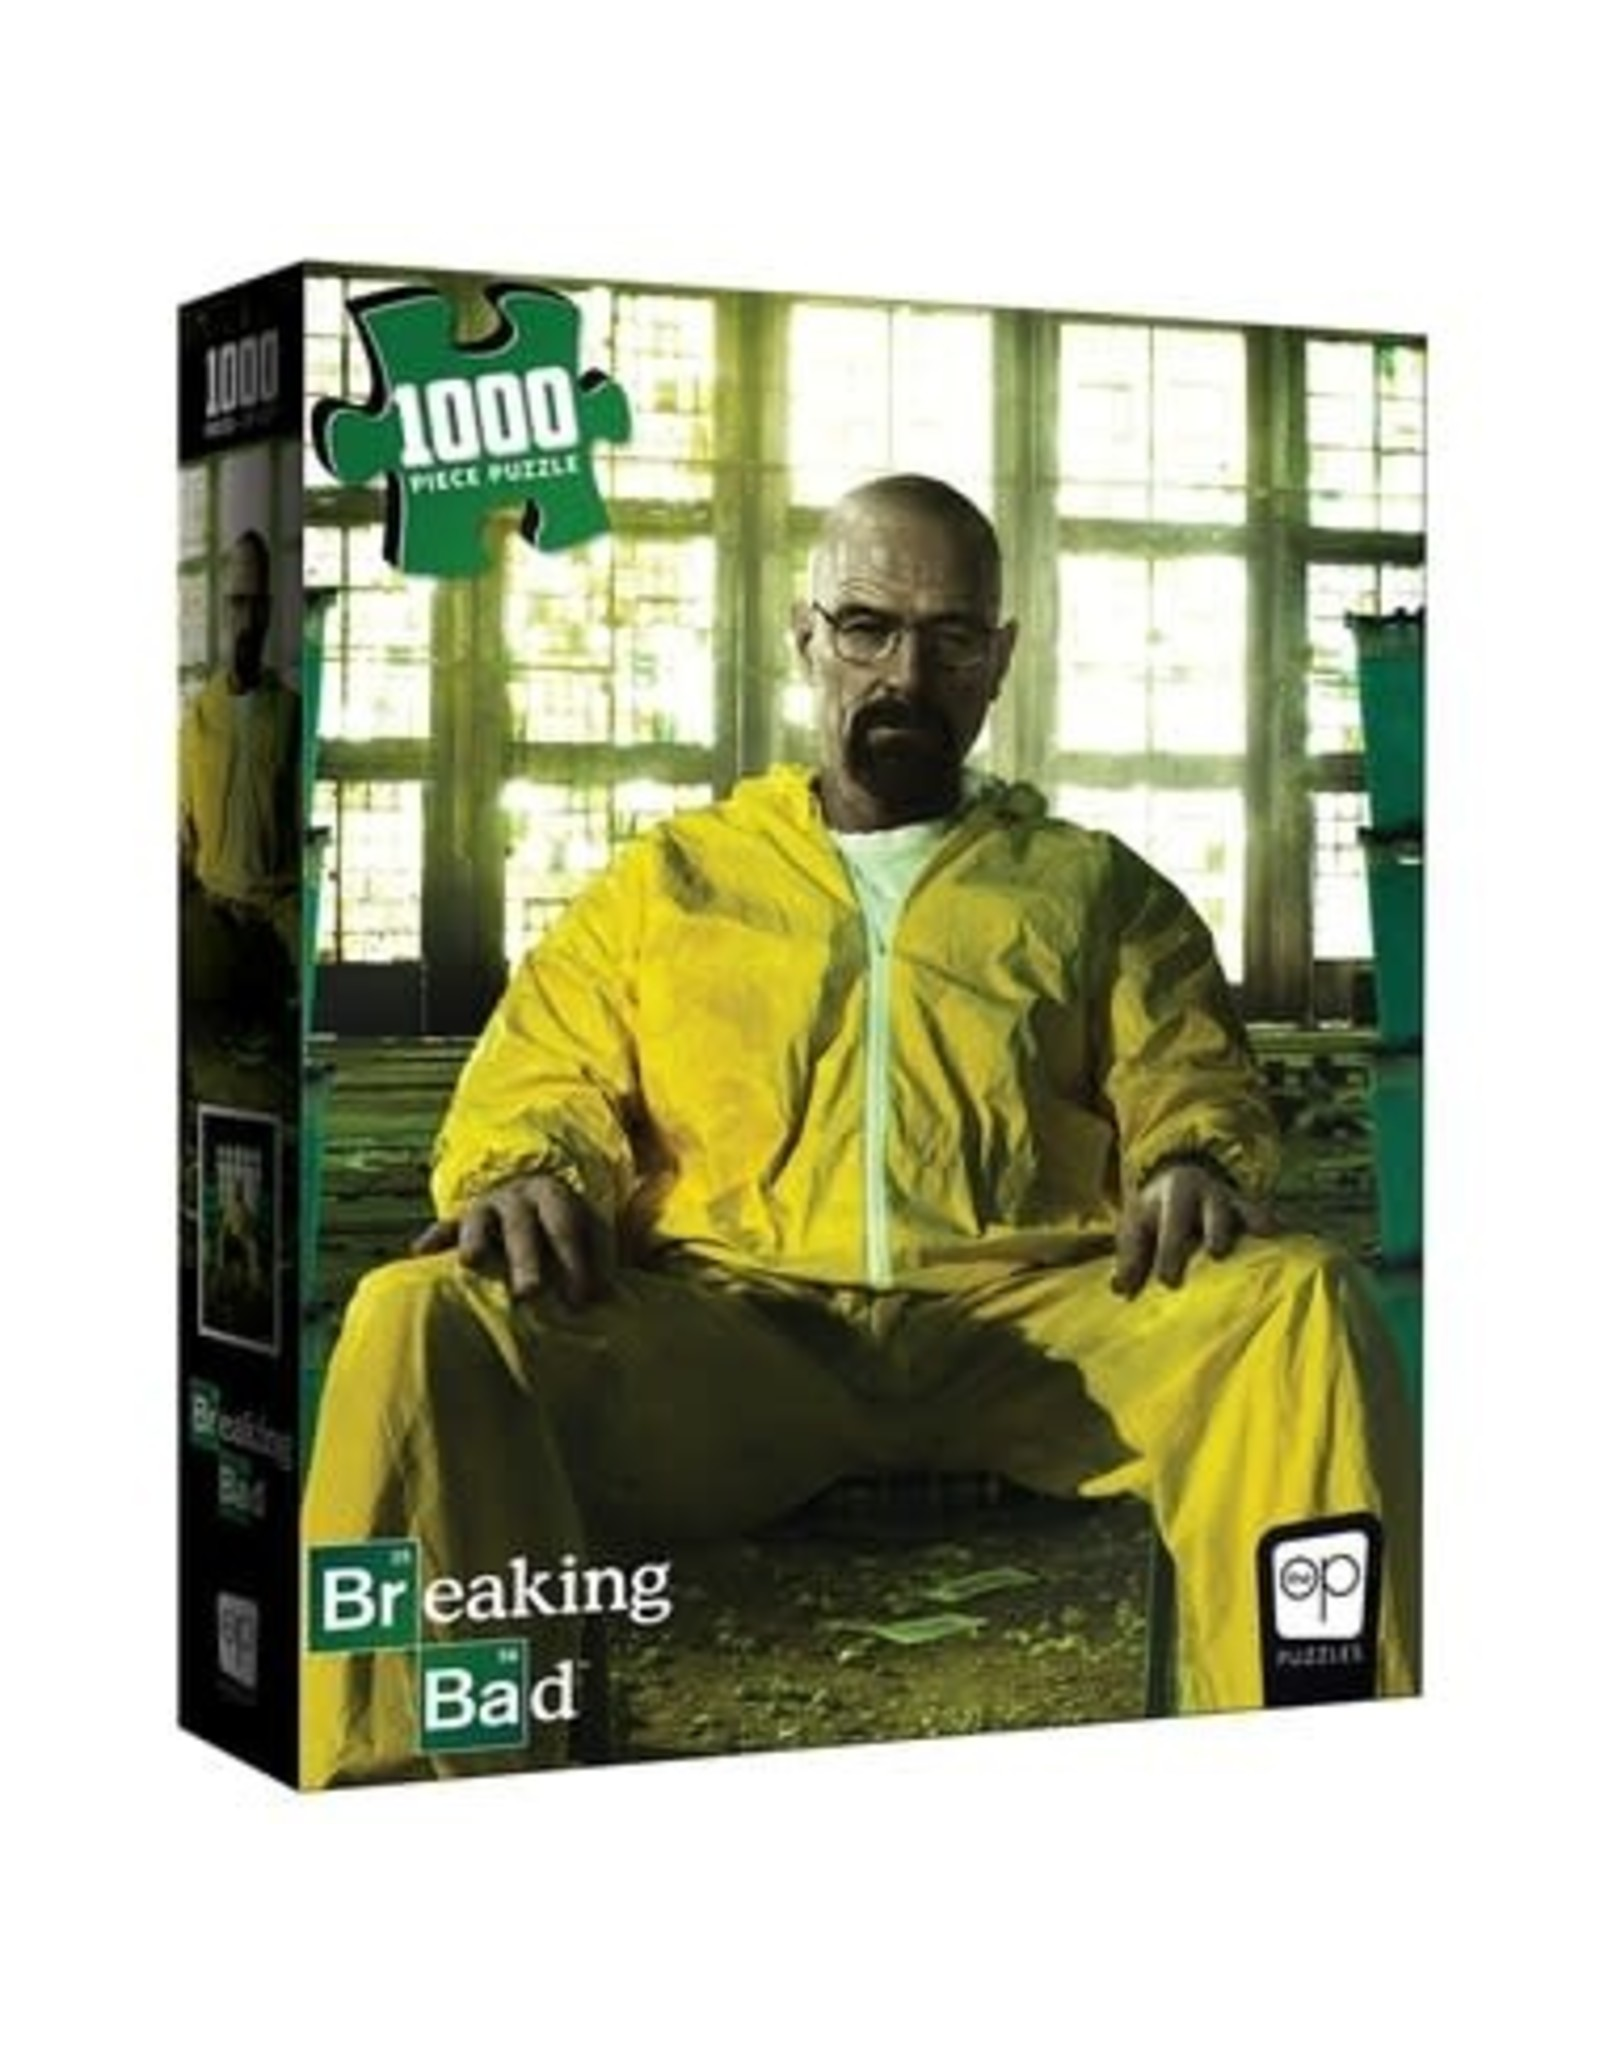 USAopoly Breaking Bad Puzzle 1000 Pc